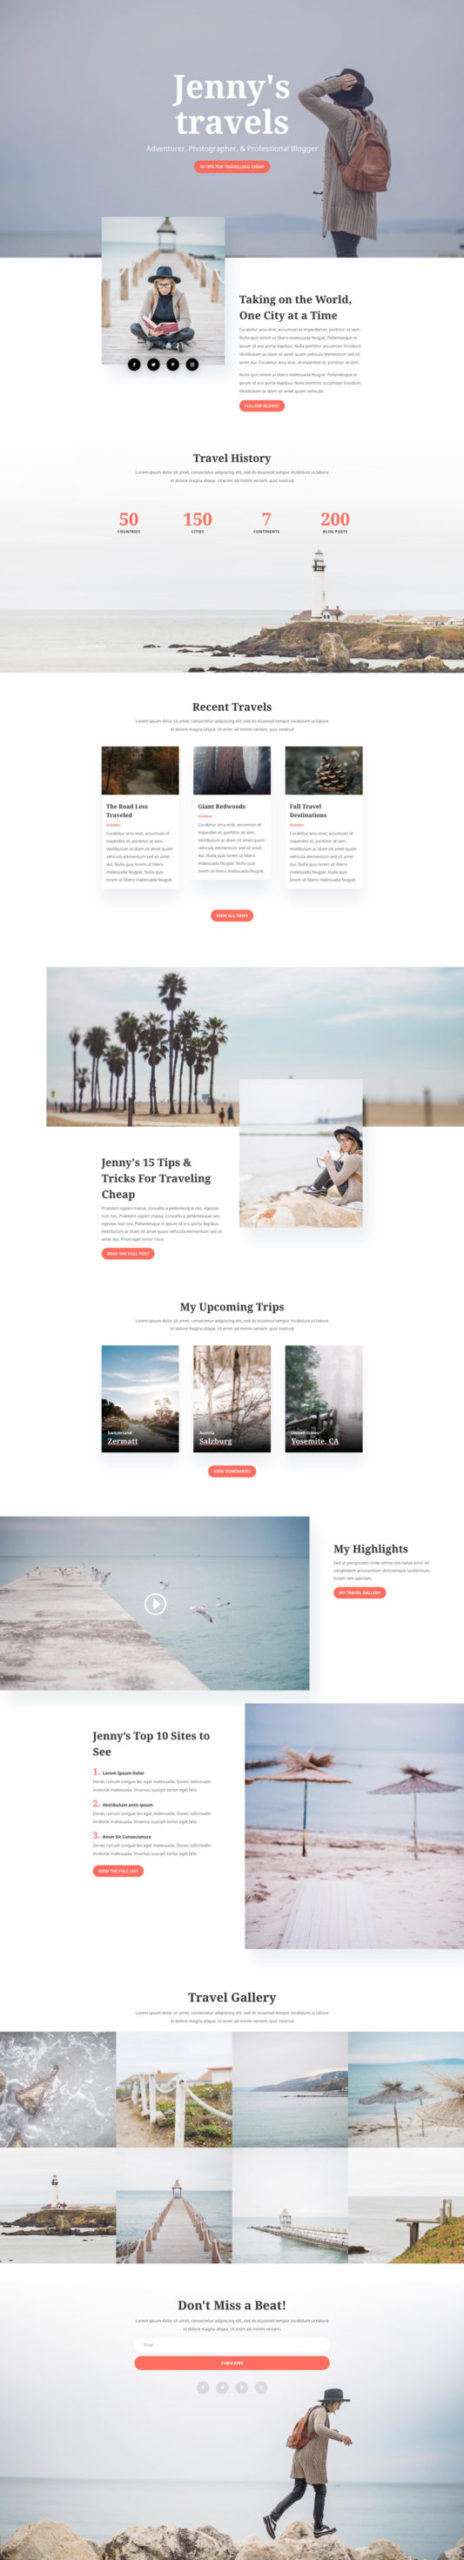 Travel Blog Landing Page